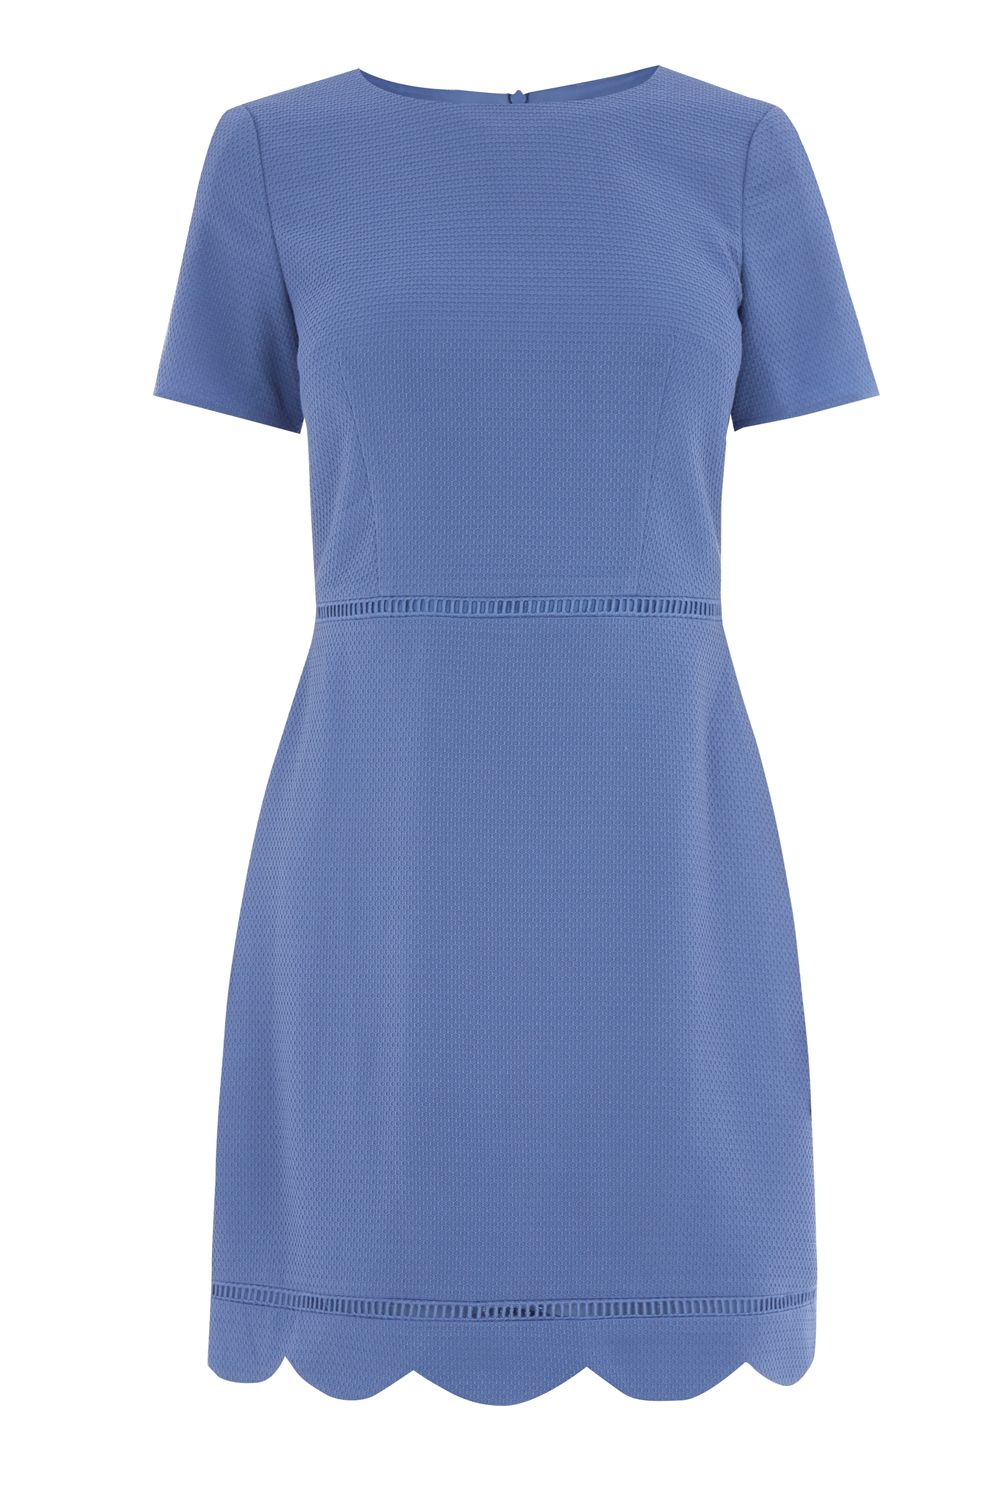 Oasis SCALLOP SLEEVE DRESS, Mid Blue